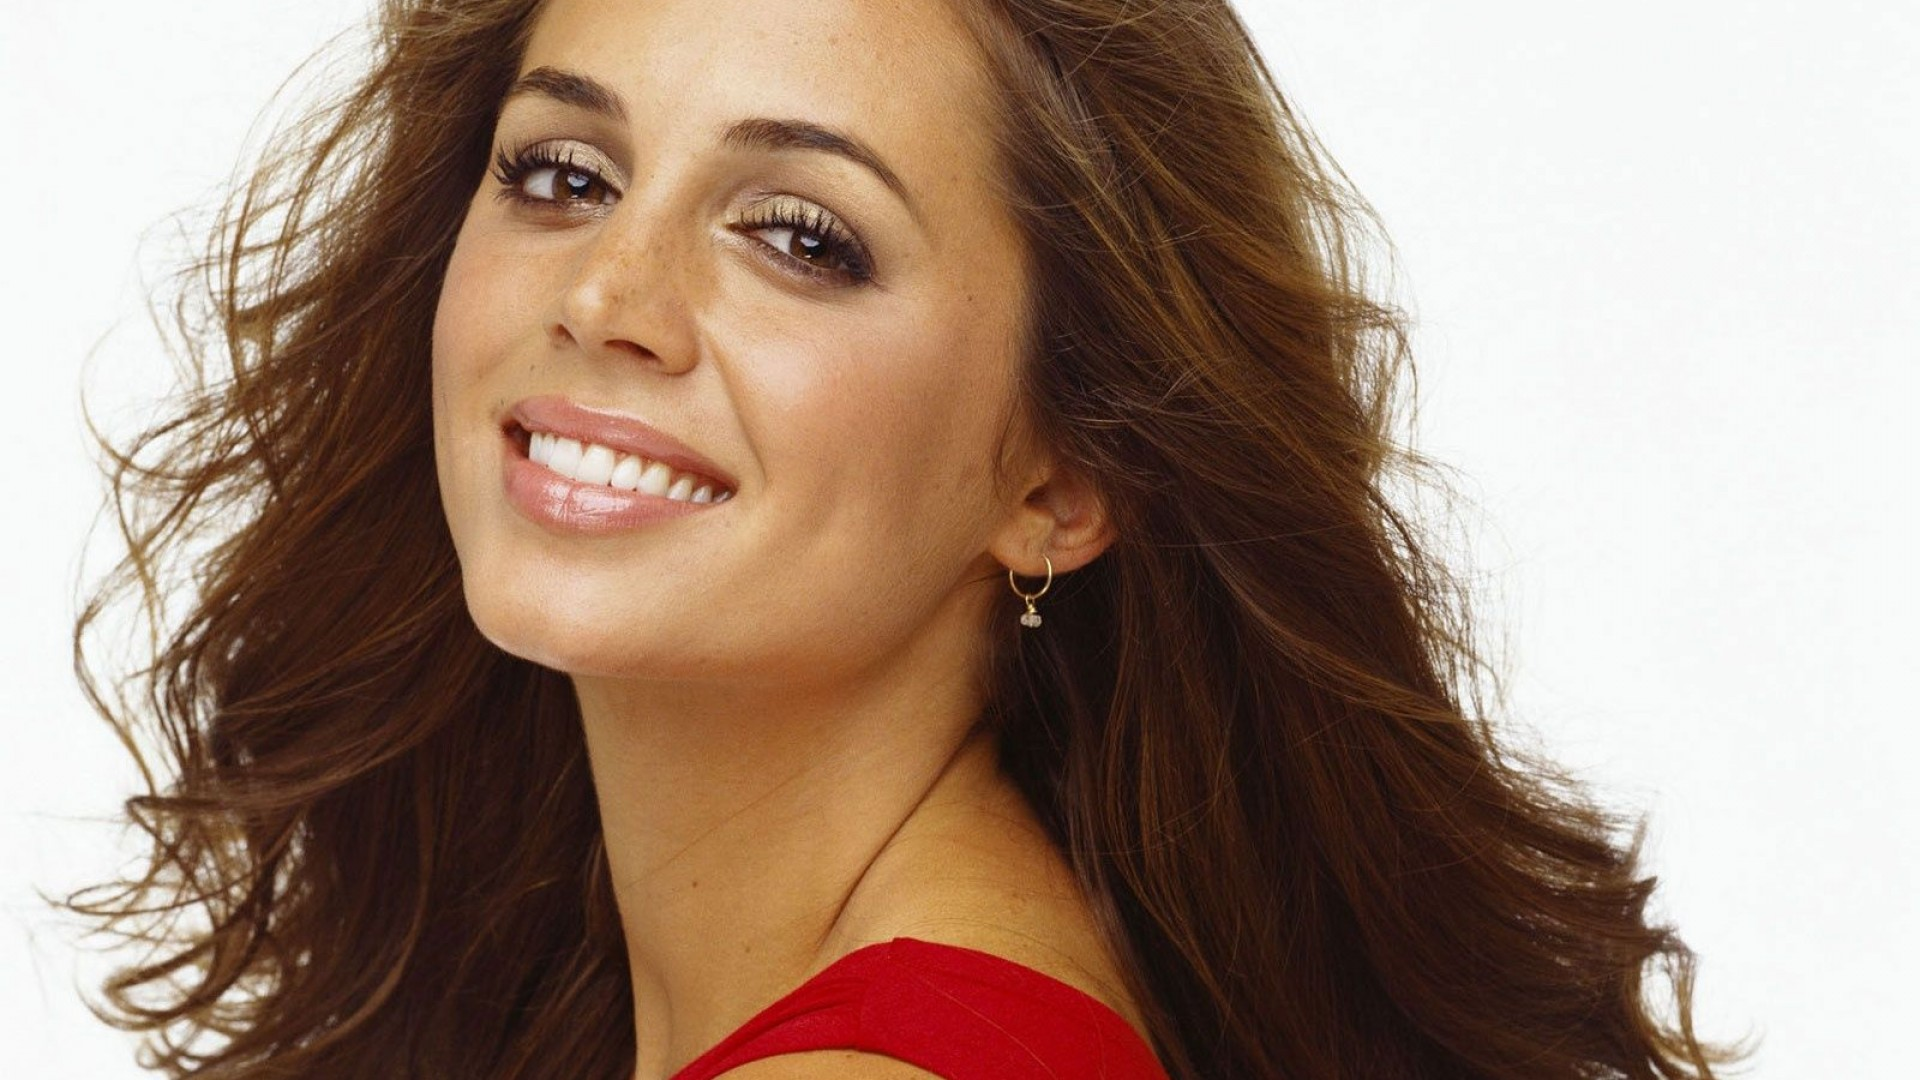 eliza dushku wallpaper background